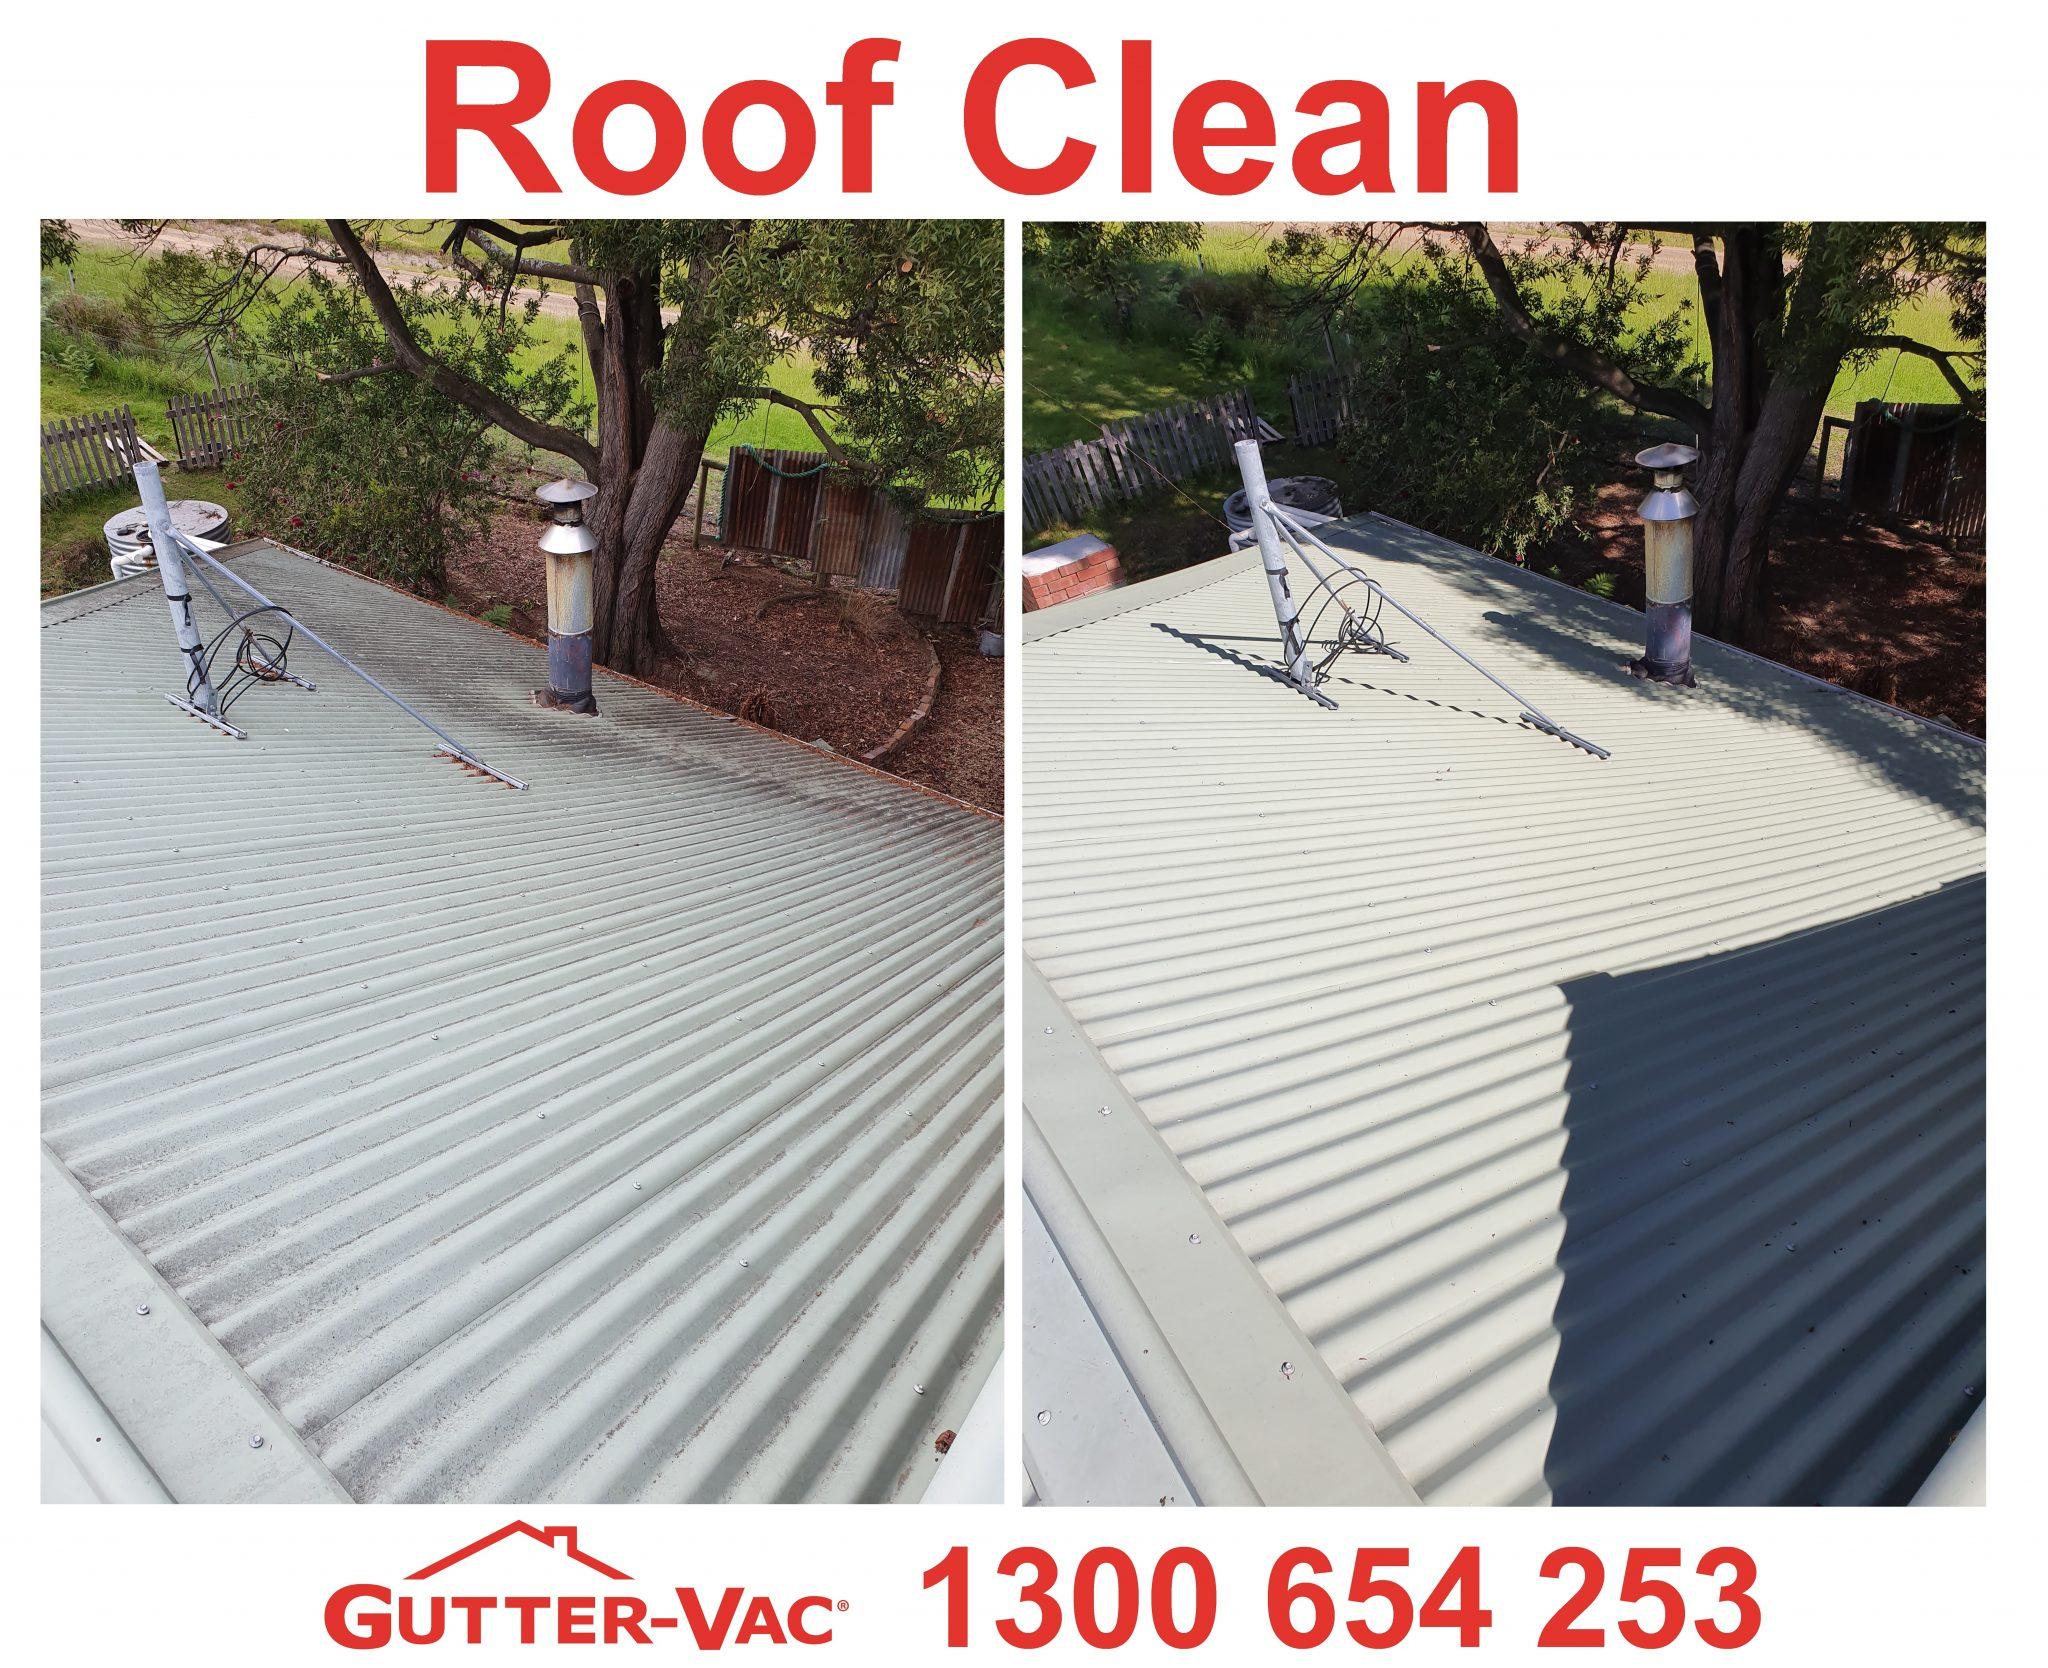 Roof  Cleaning at Gutter-Vac Tasmania